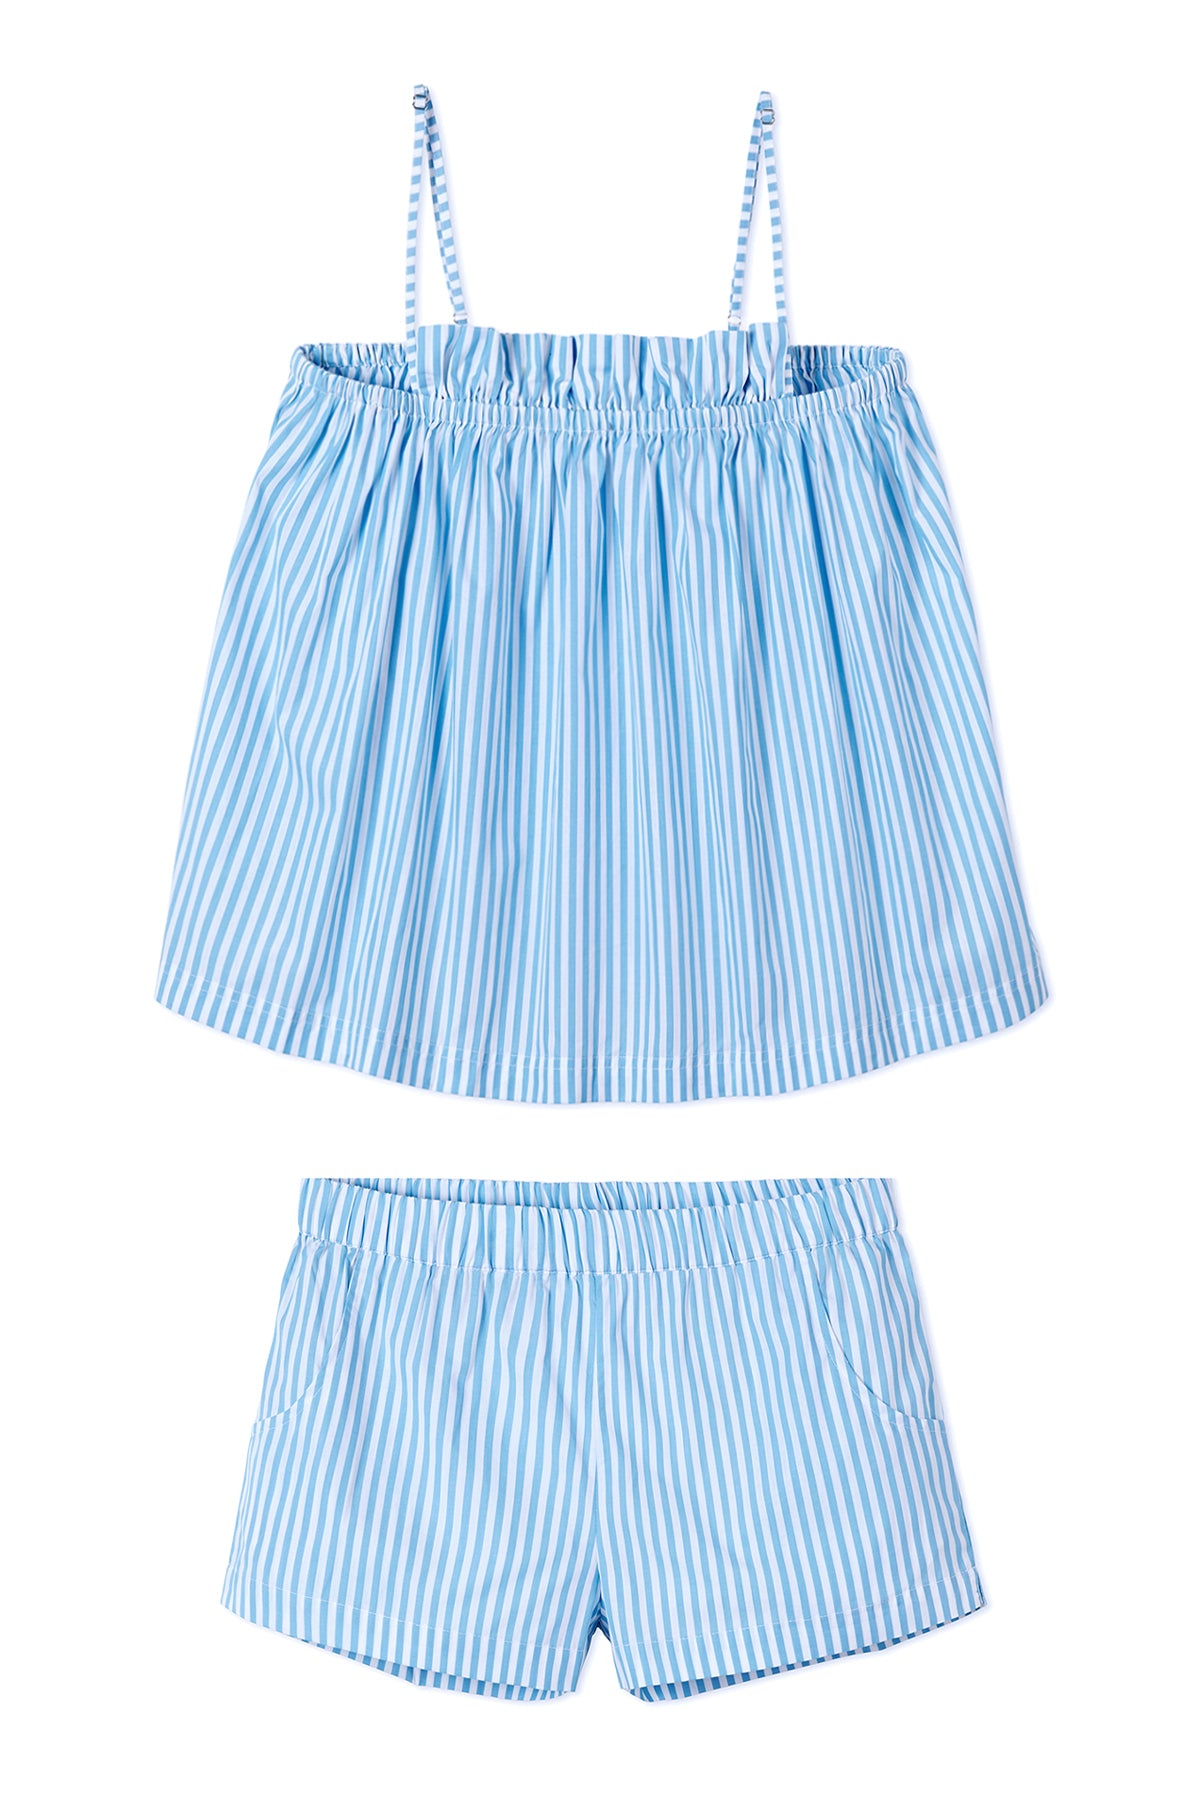 Ruffle Shorts Set in Surf